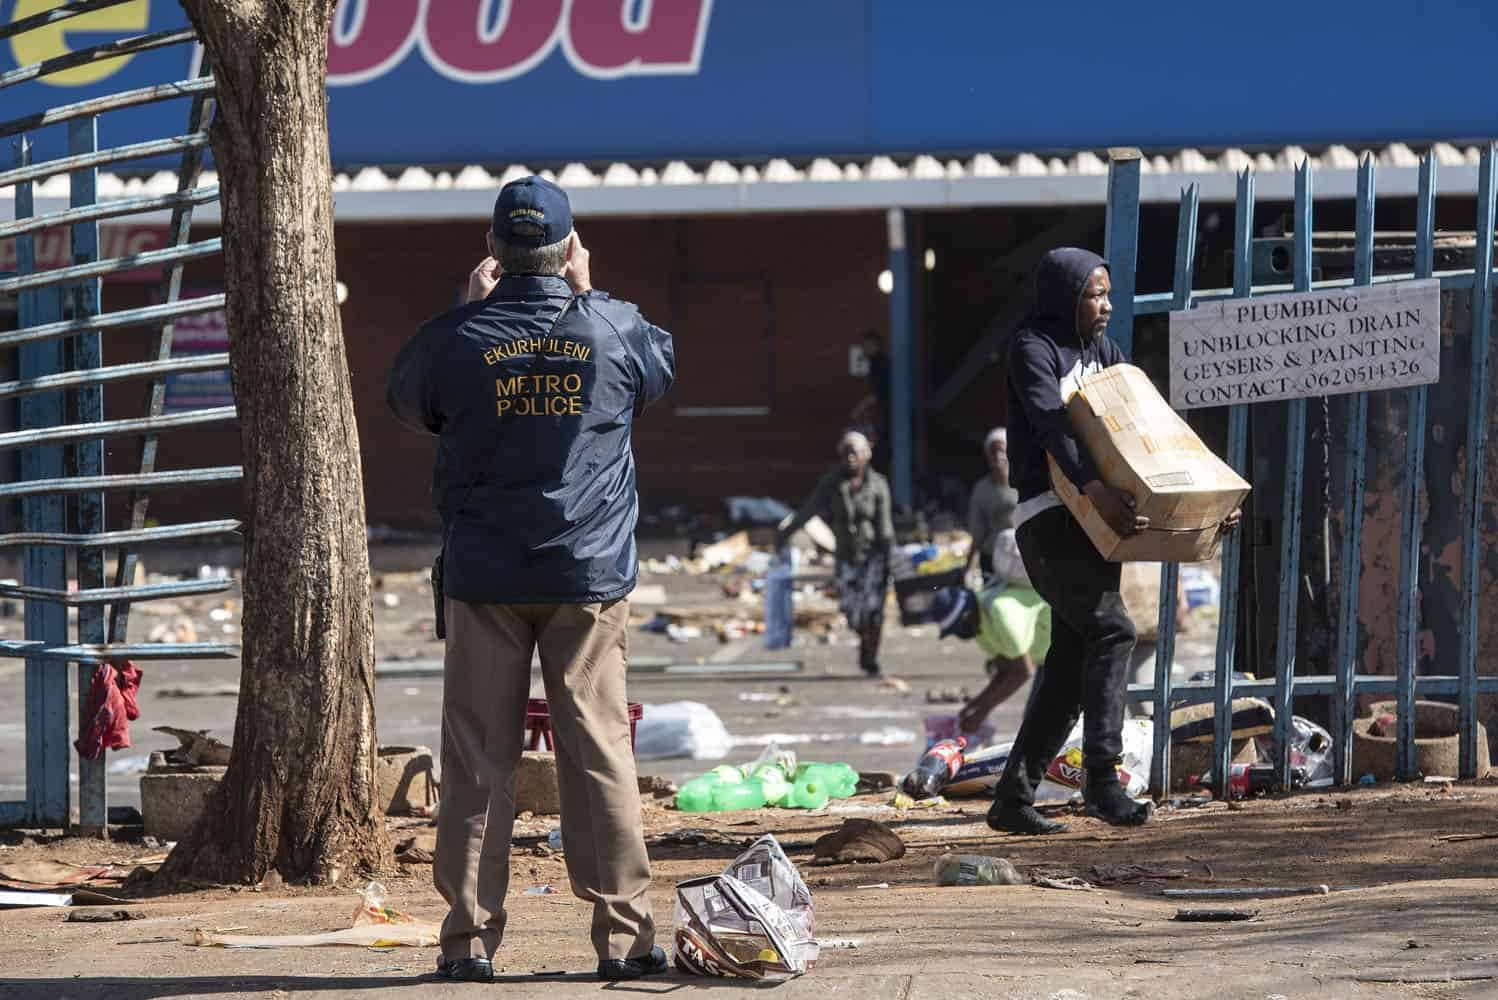 Gauteng residents wake up to more protests and burning buildings